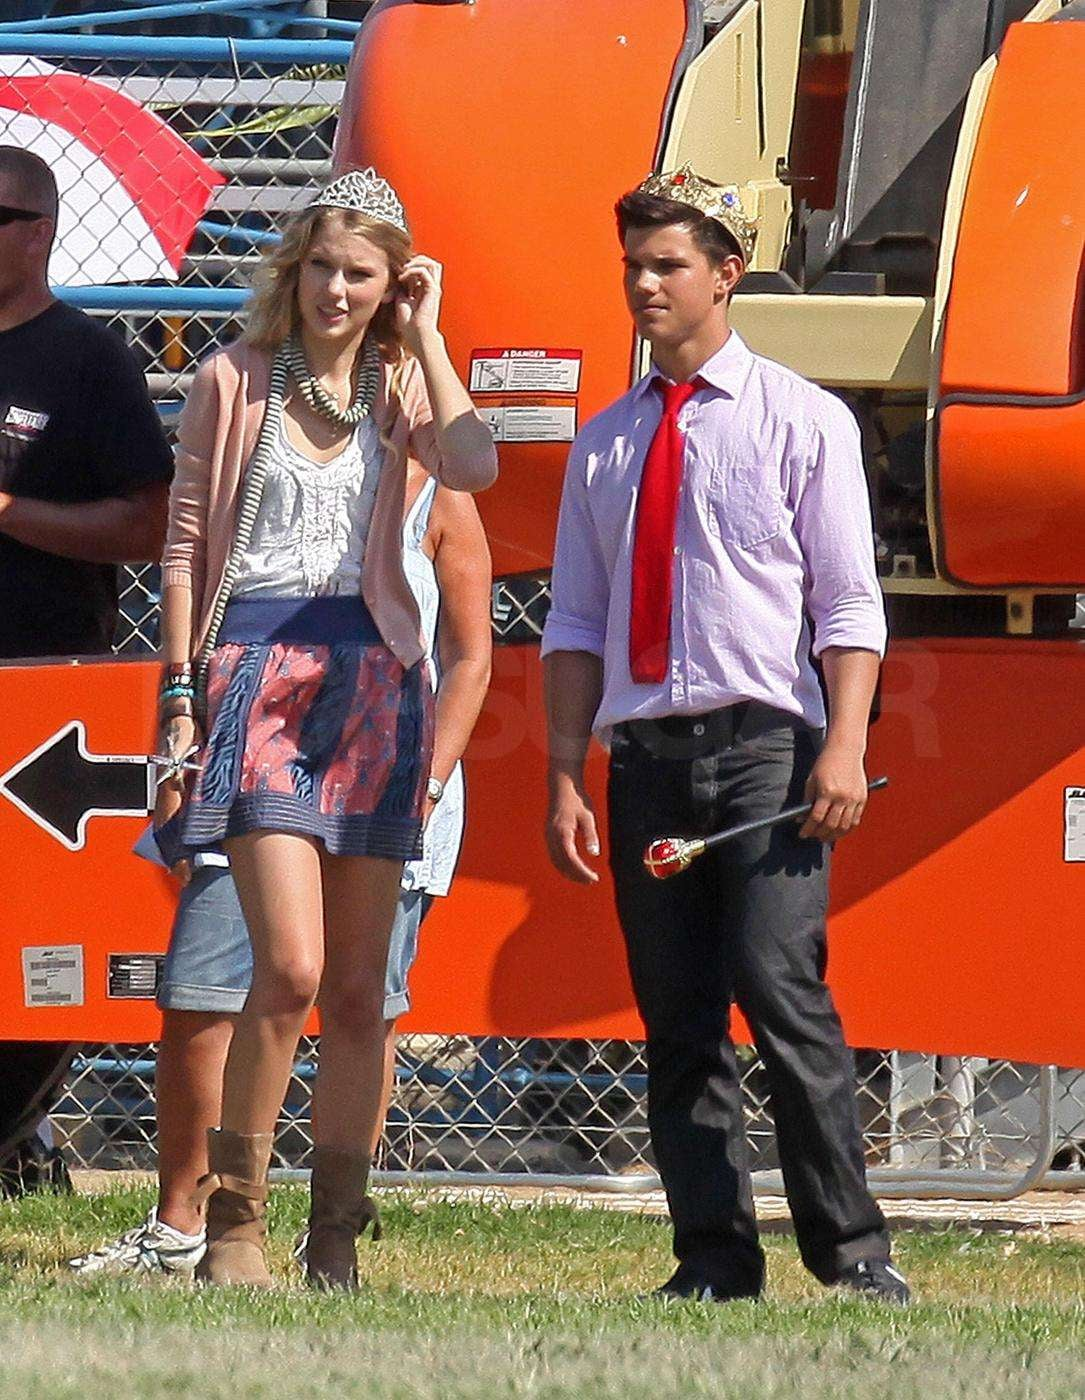 Photos Of Taylor Lautner And Taylor Swift With Crowns Emma Roberts